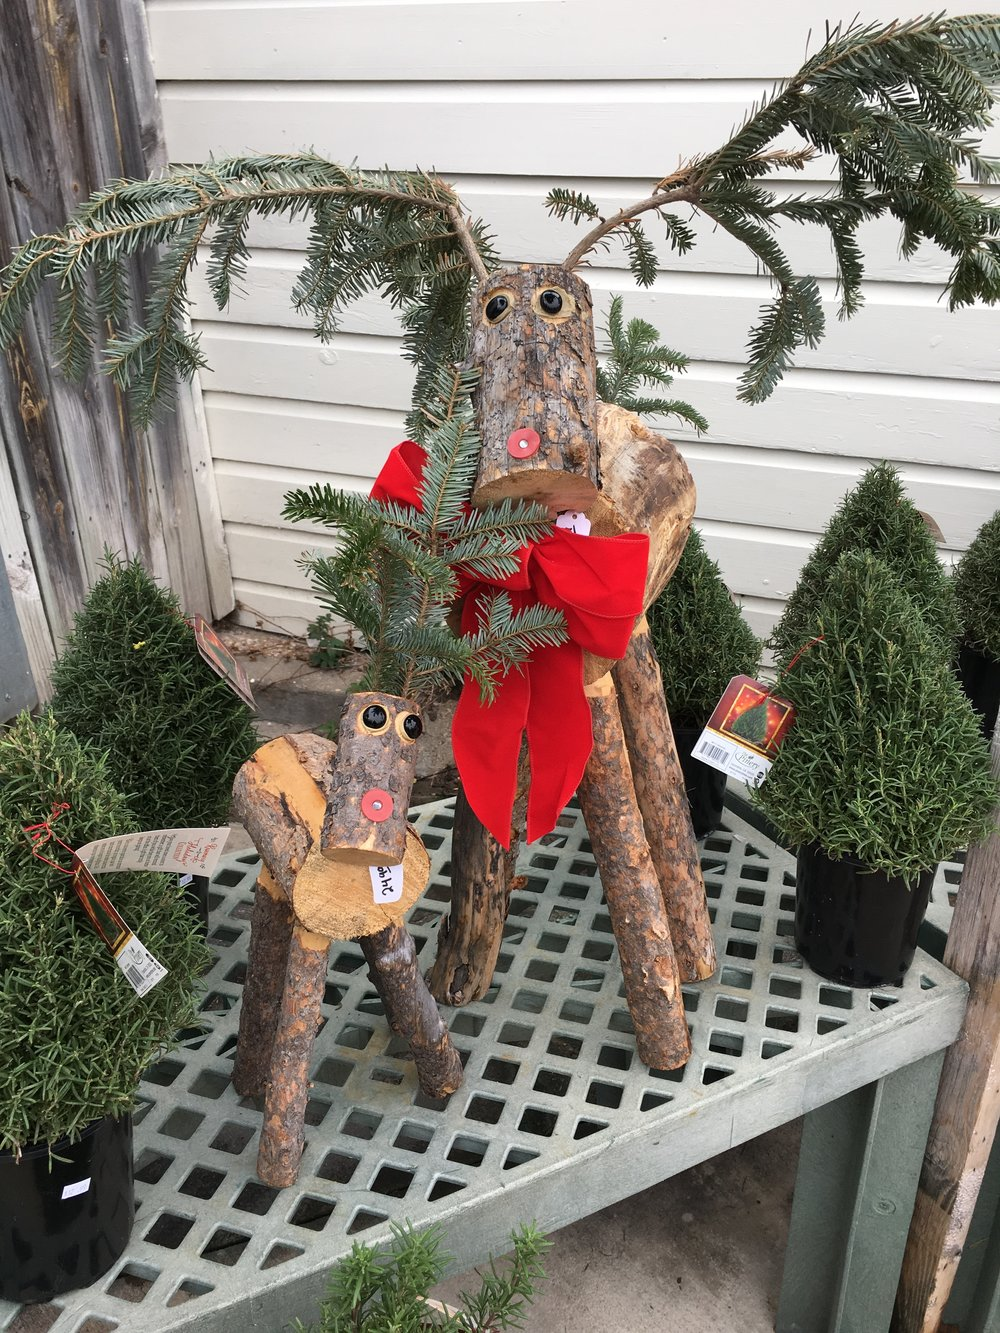 Buy these cuties and come to get fresh greenery from us each year! Rosemary trees make amazing gifts and fill the home with a scent everyone will love.